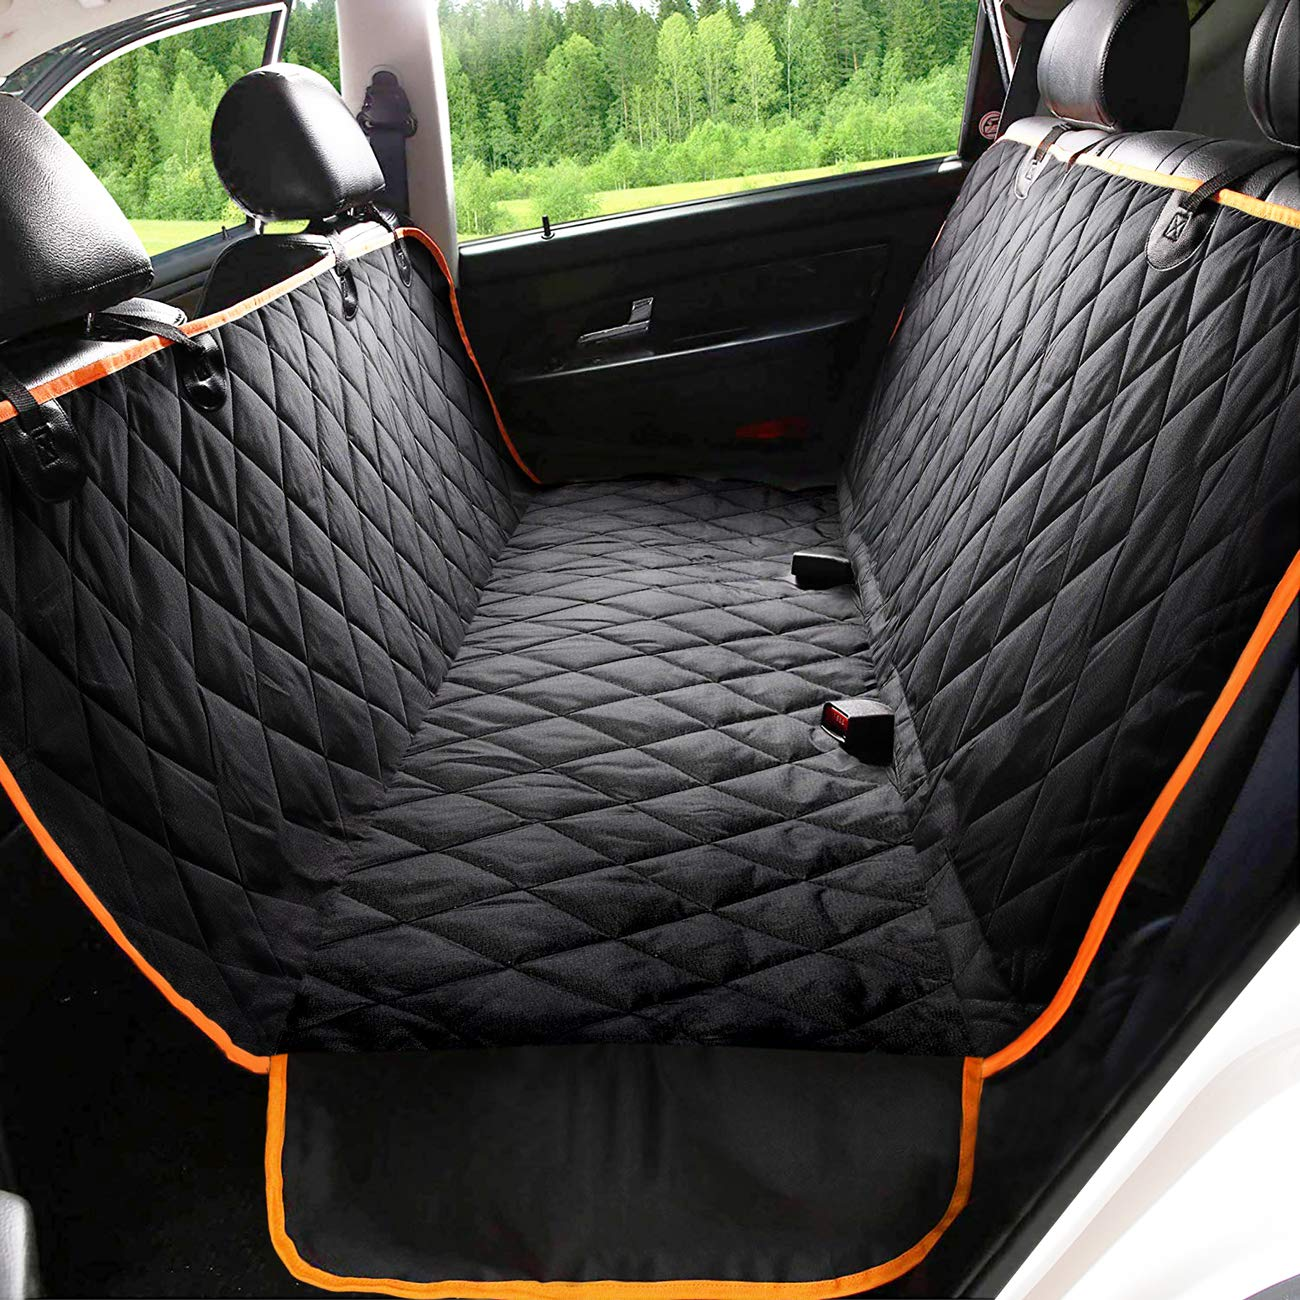 Kytely Upgraded Dog Car Seat Cover Waterproof Pet Seat Cover for Back Seat, Scratch Proof & Nonslip Backing & Hammock, 600D Heavy Duty Dog Seat Cover for Cars, Trucks and Suvs by Kytely